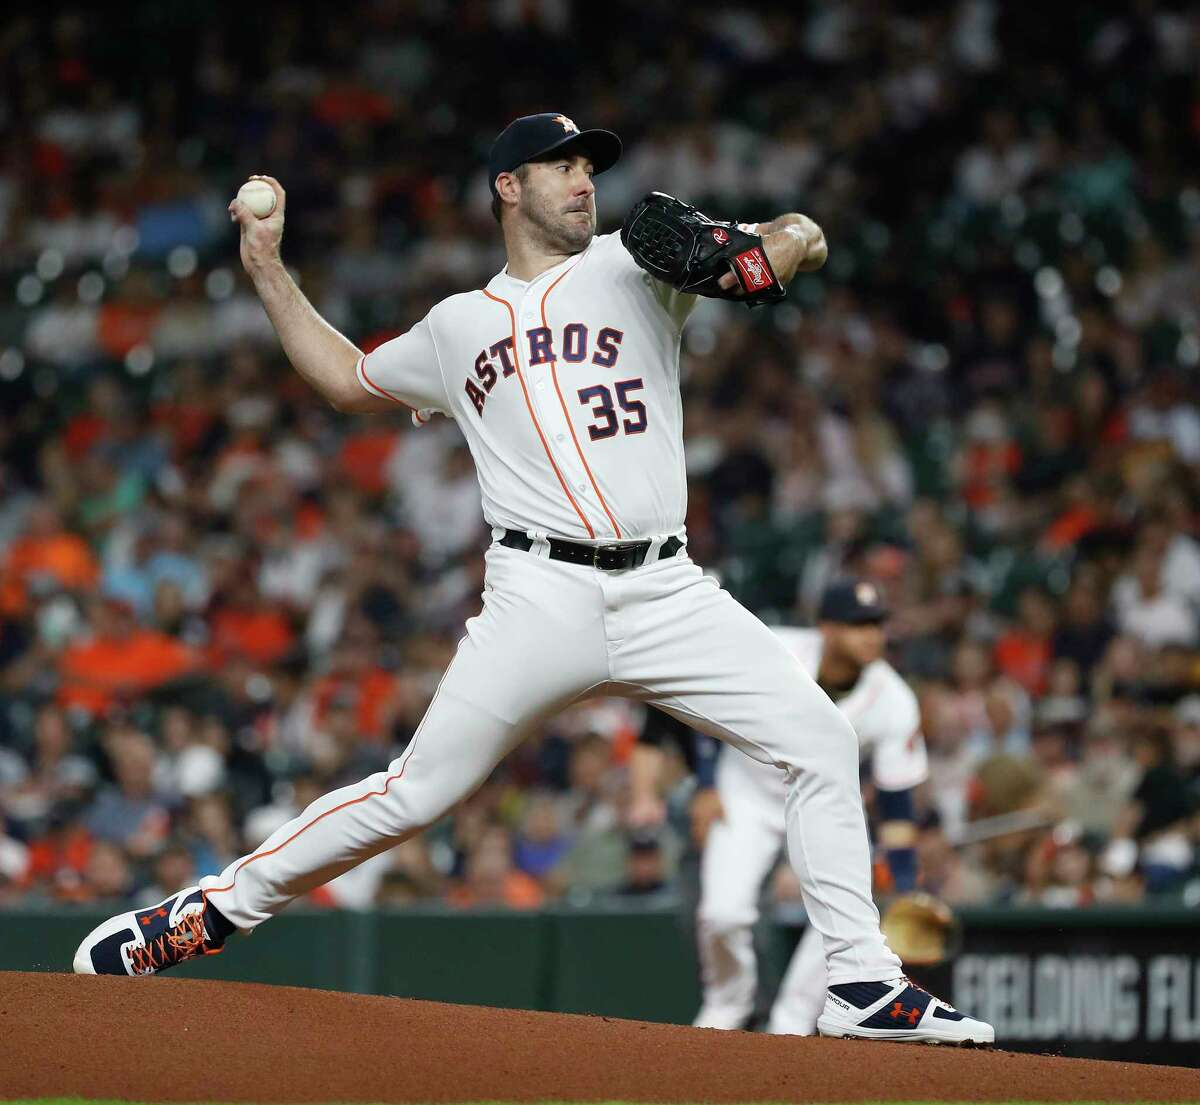 Houston Astros starting pitcher Justin Verlander (35) pitches during the first inning of an MLB baseball game at Minute Maid Park, Tuesday, Sept. 17, 2019, in Houston.